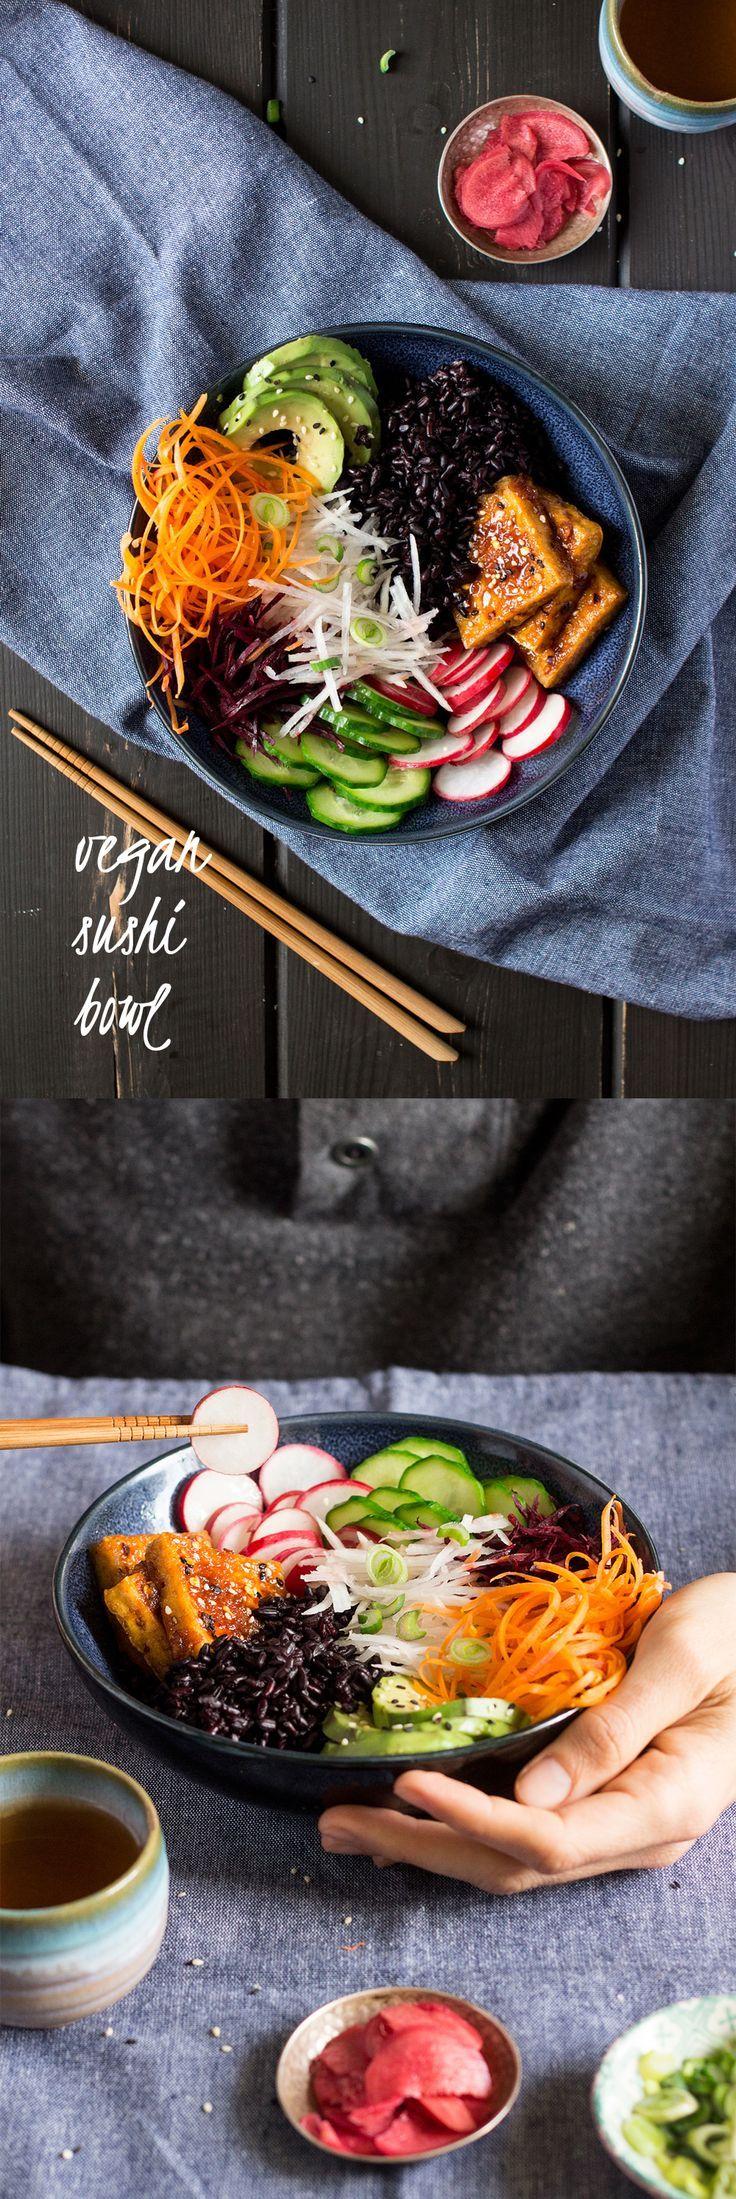 This vegan gluten free sushi bowl looks delicious! Perfect healthy lunch.,